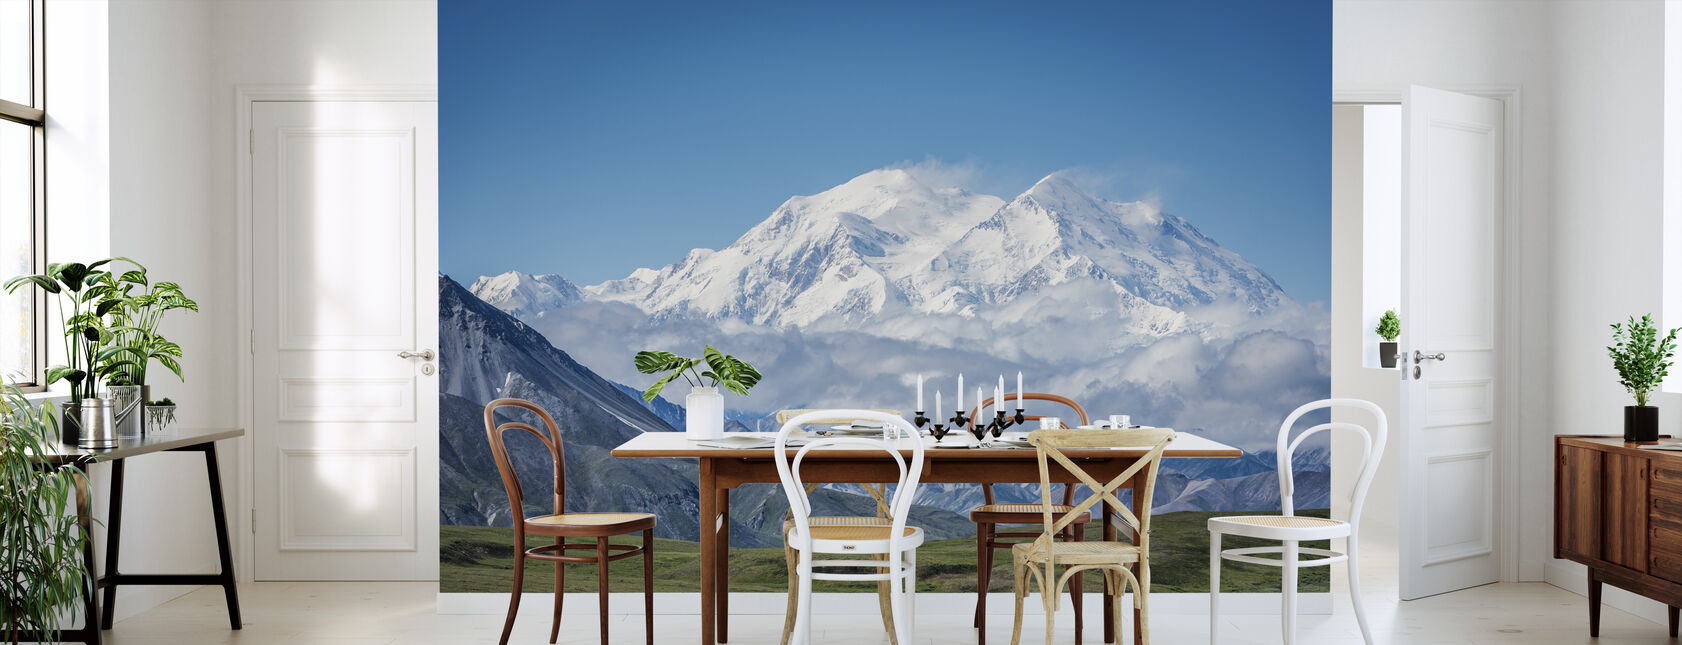 Mt Denali Alaska - Wallpaper - Kitchen